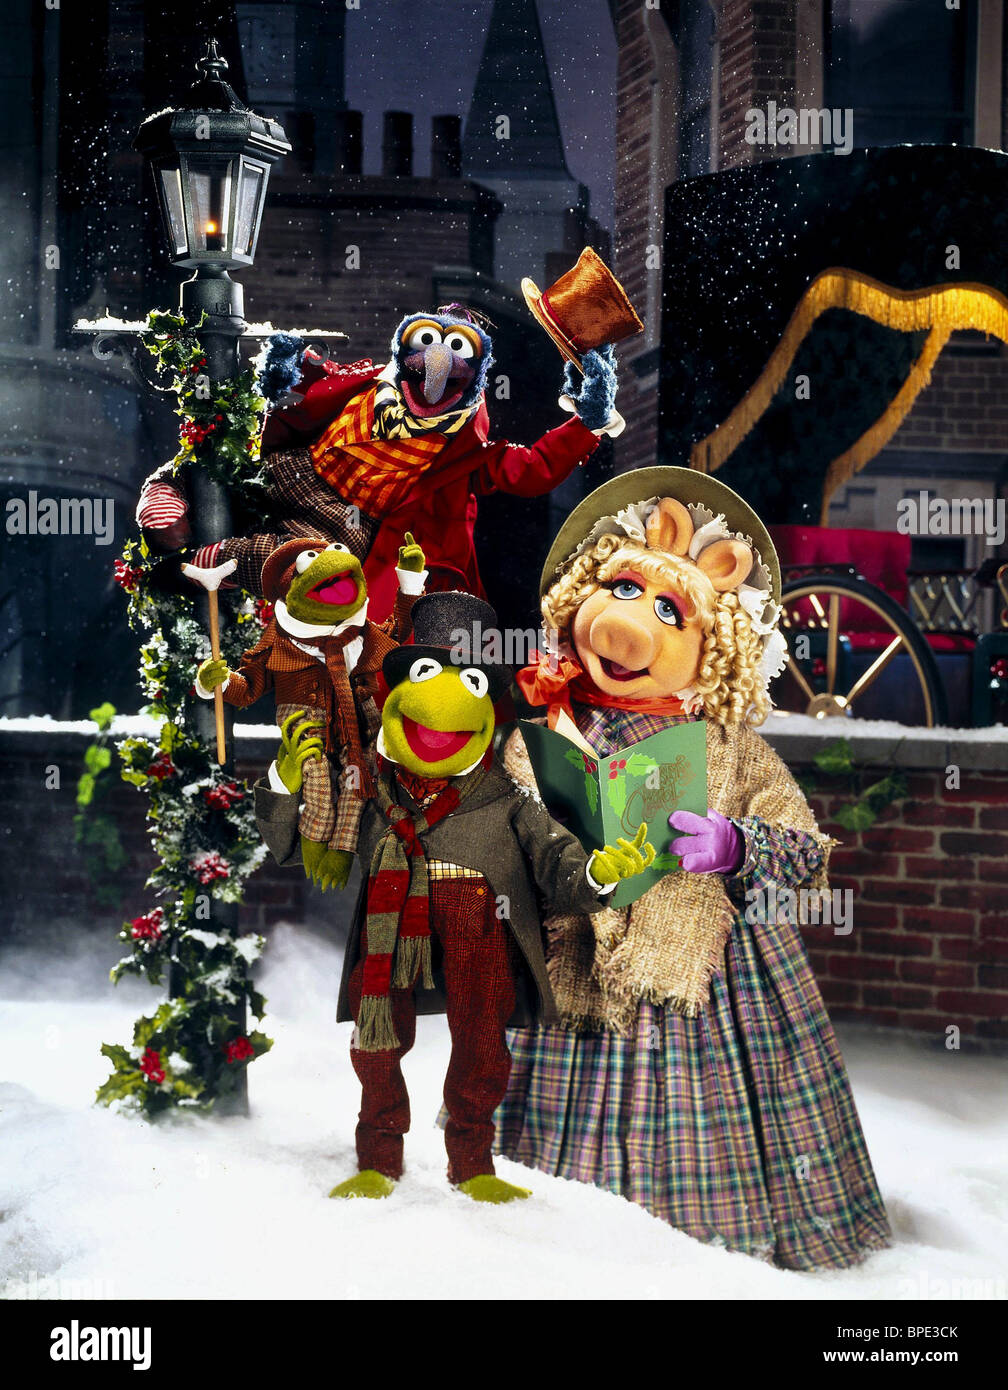 GONZO TINY TIM KERMIT THE FROG & MISS PIGGY THE MUPPET CHRISTMAS ...